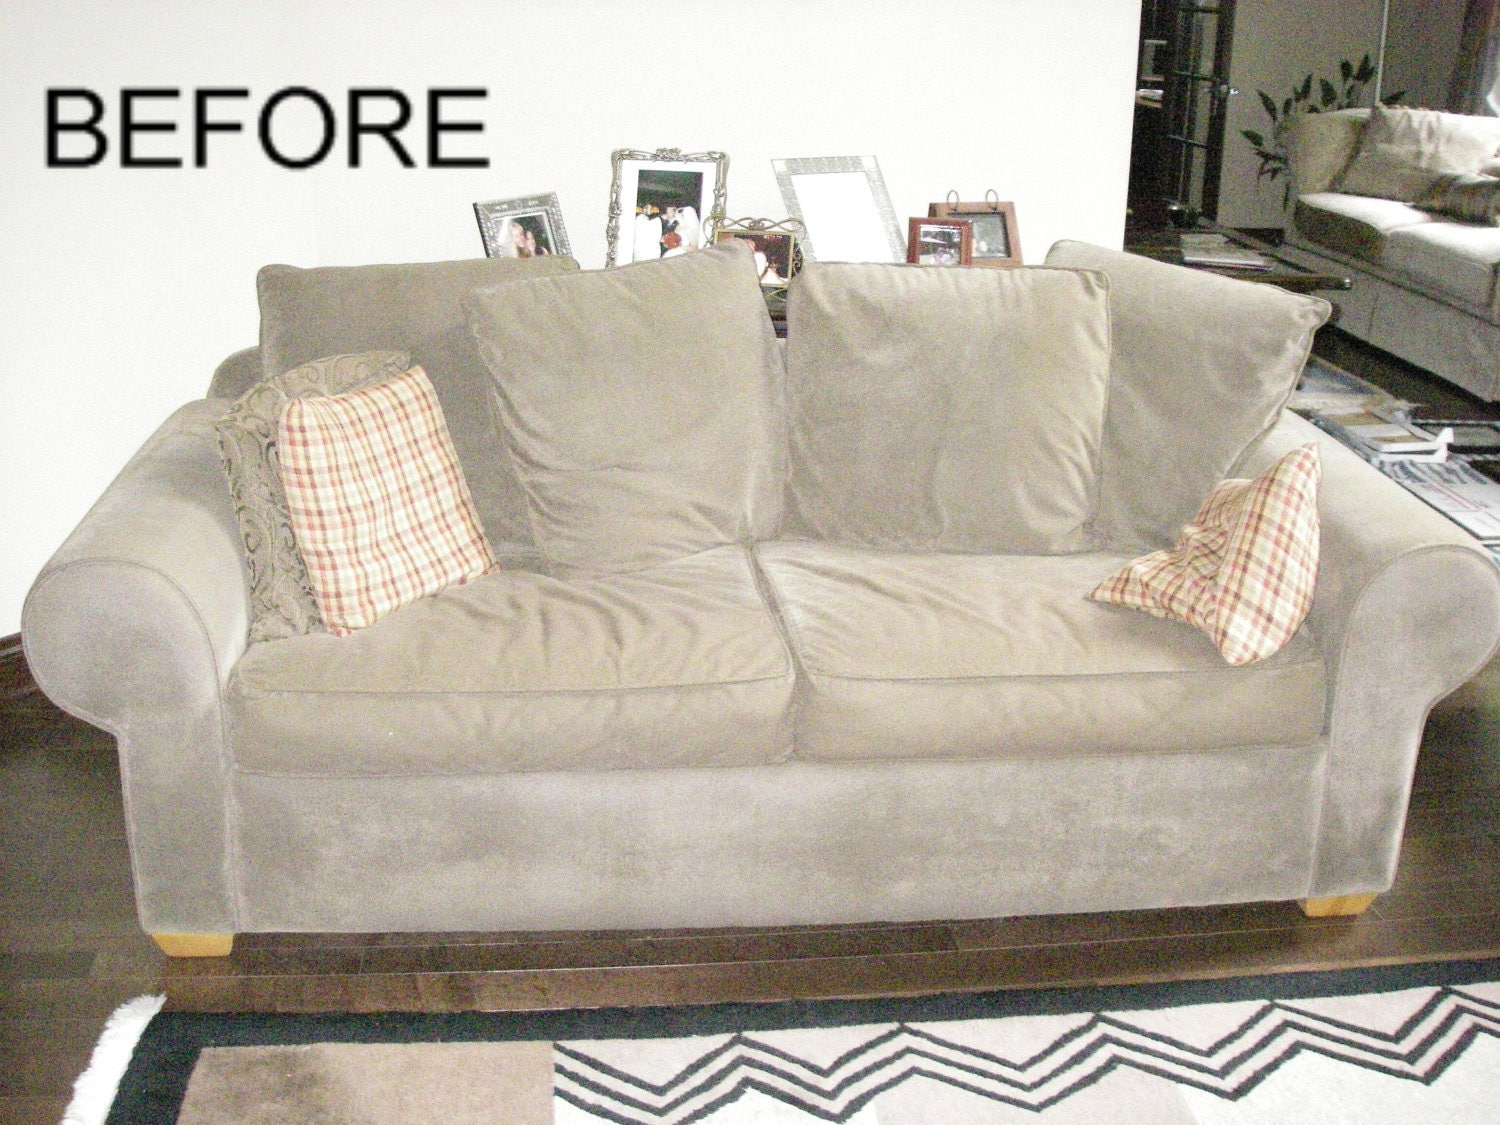 Couch Slipcovers For Reclining Sofa | Home Improvement